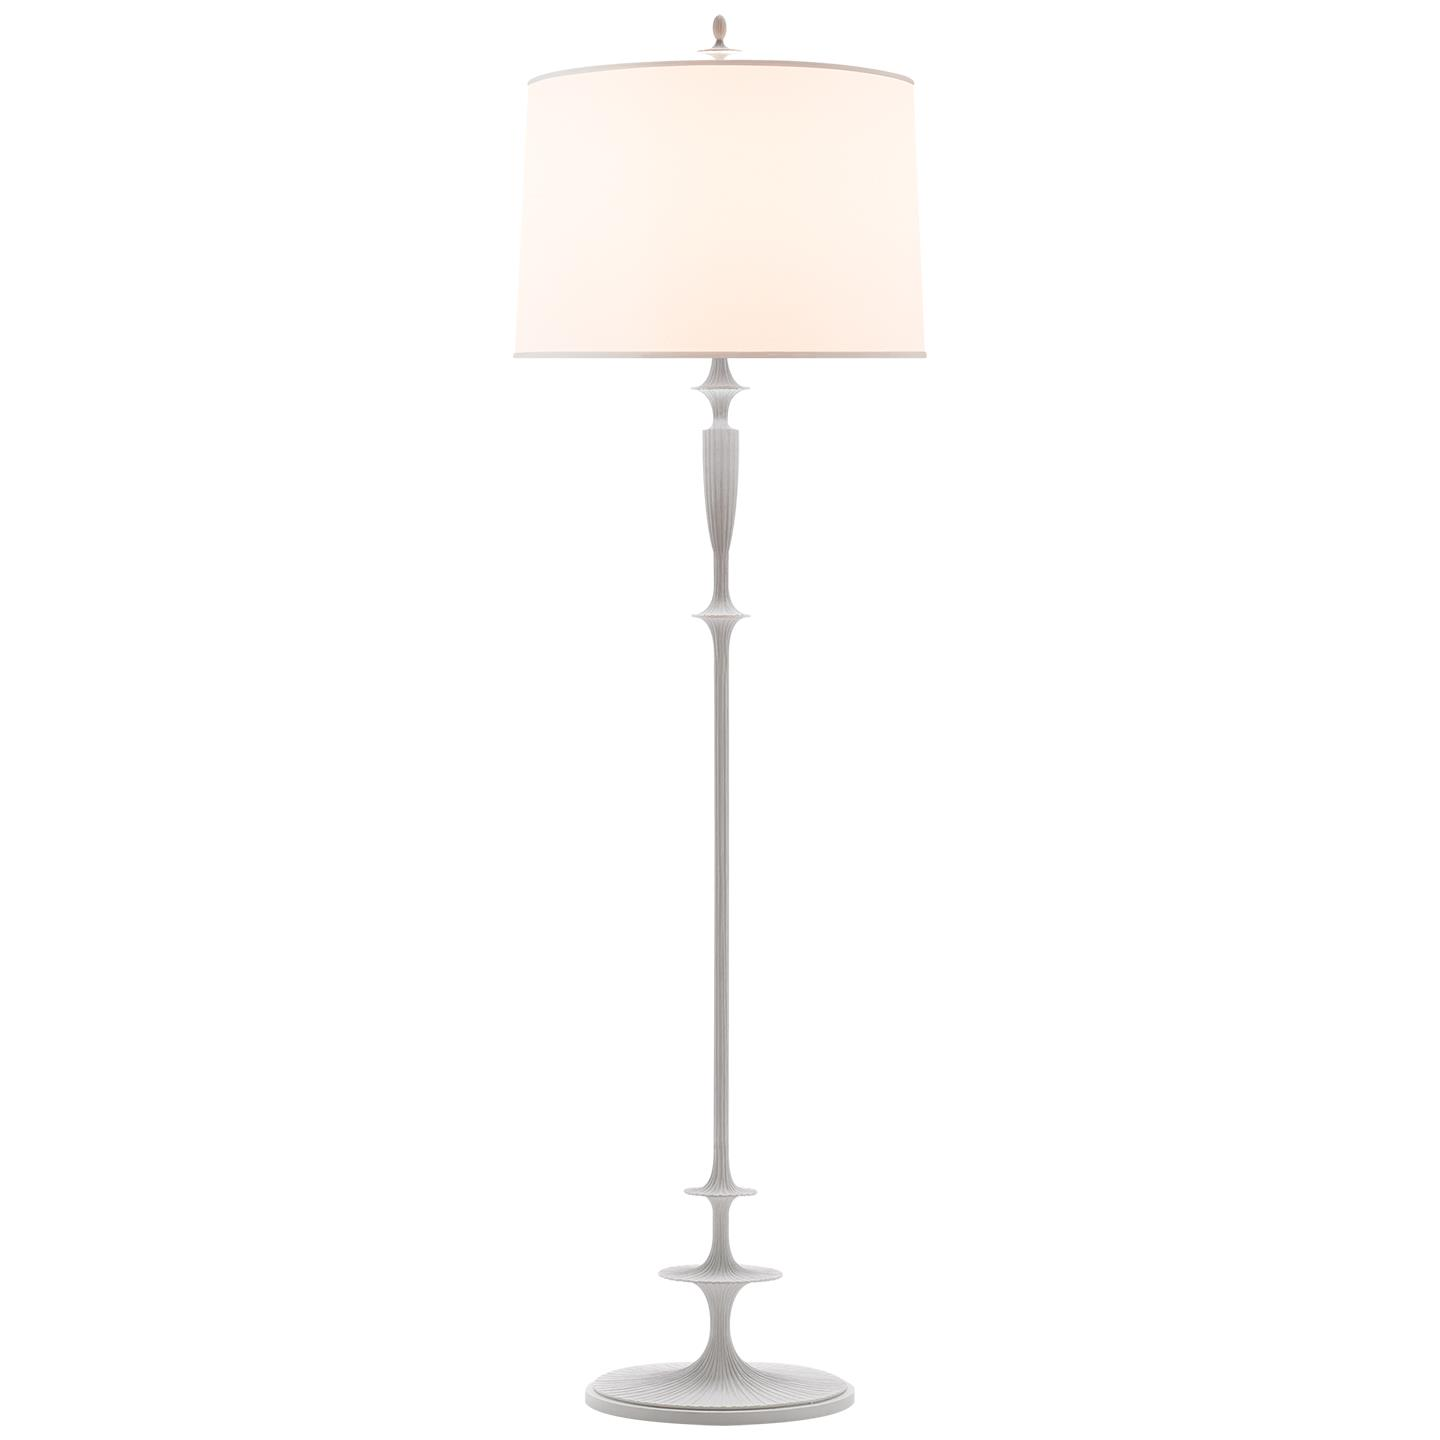 Lotus Floor Lamp